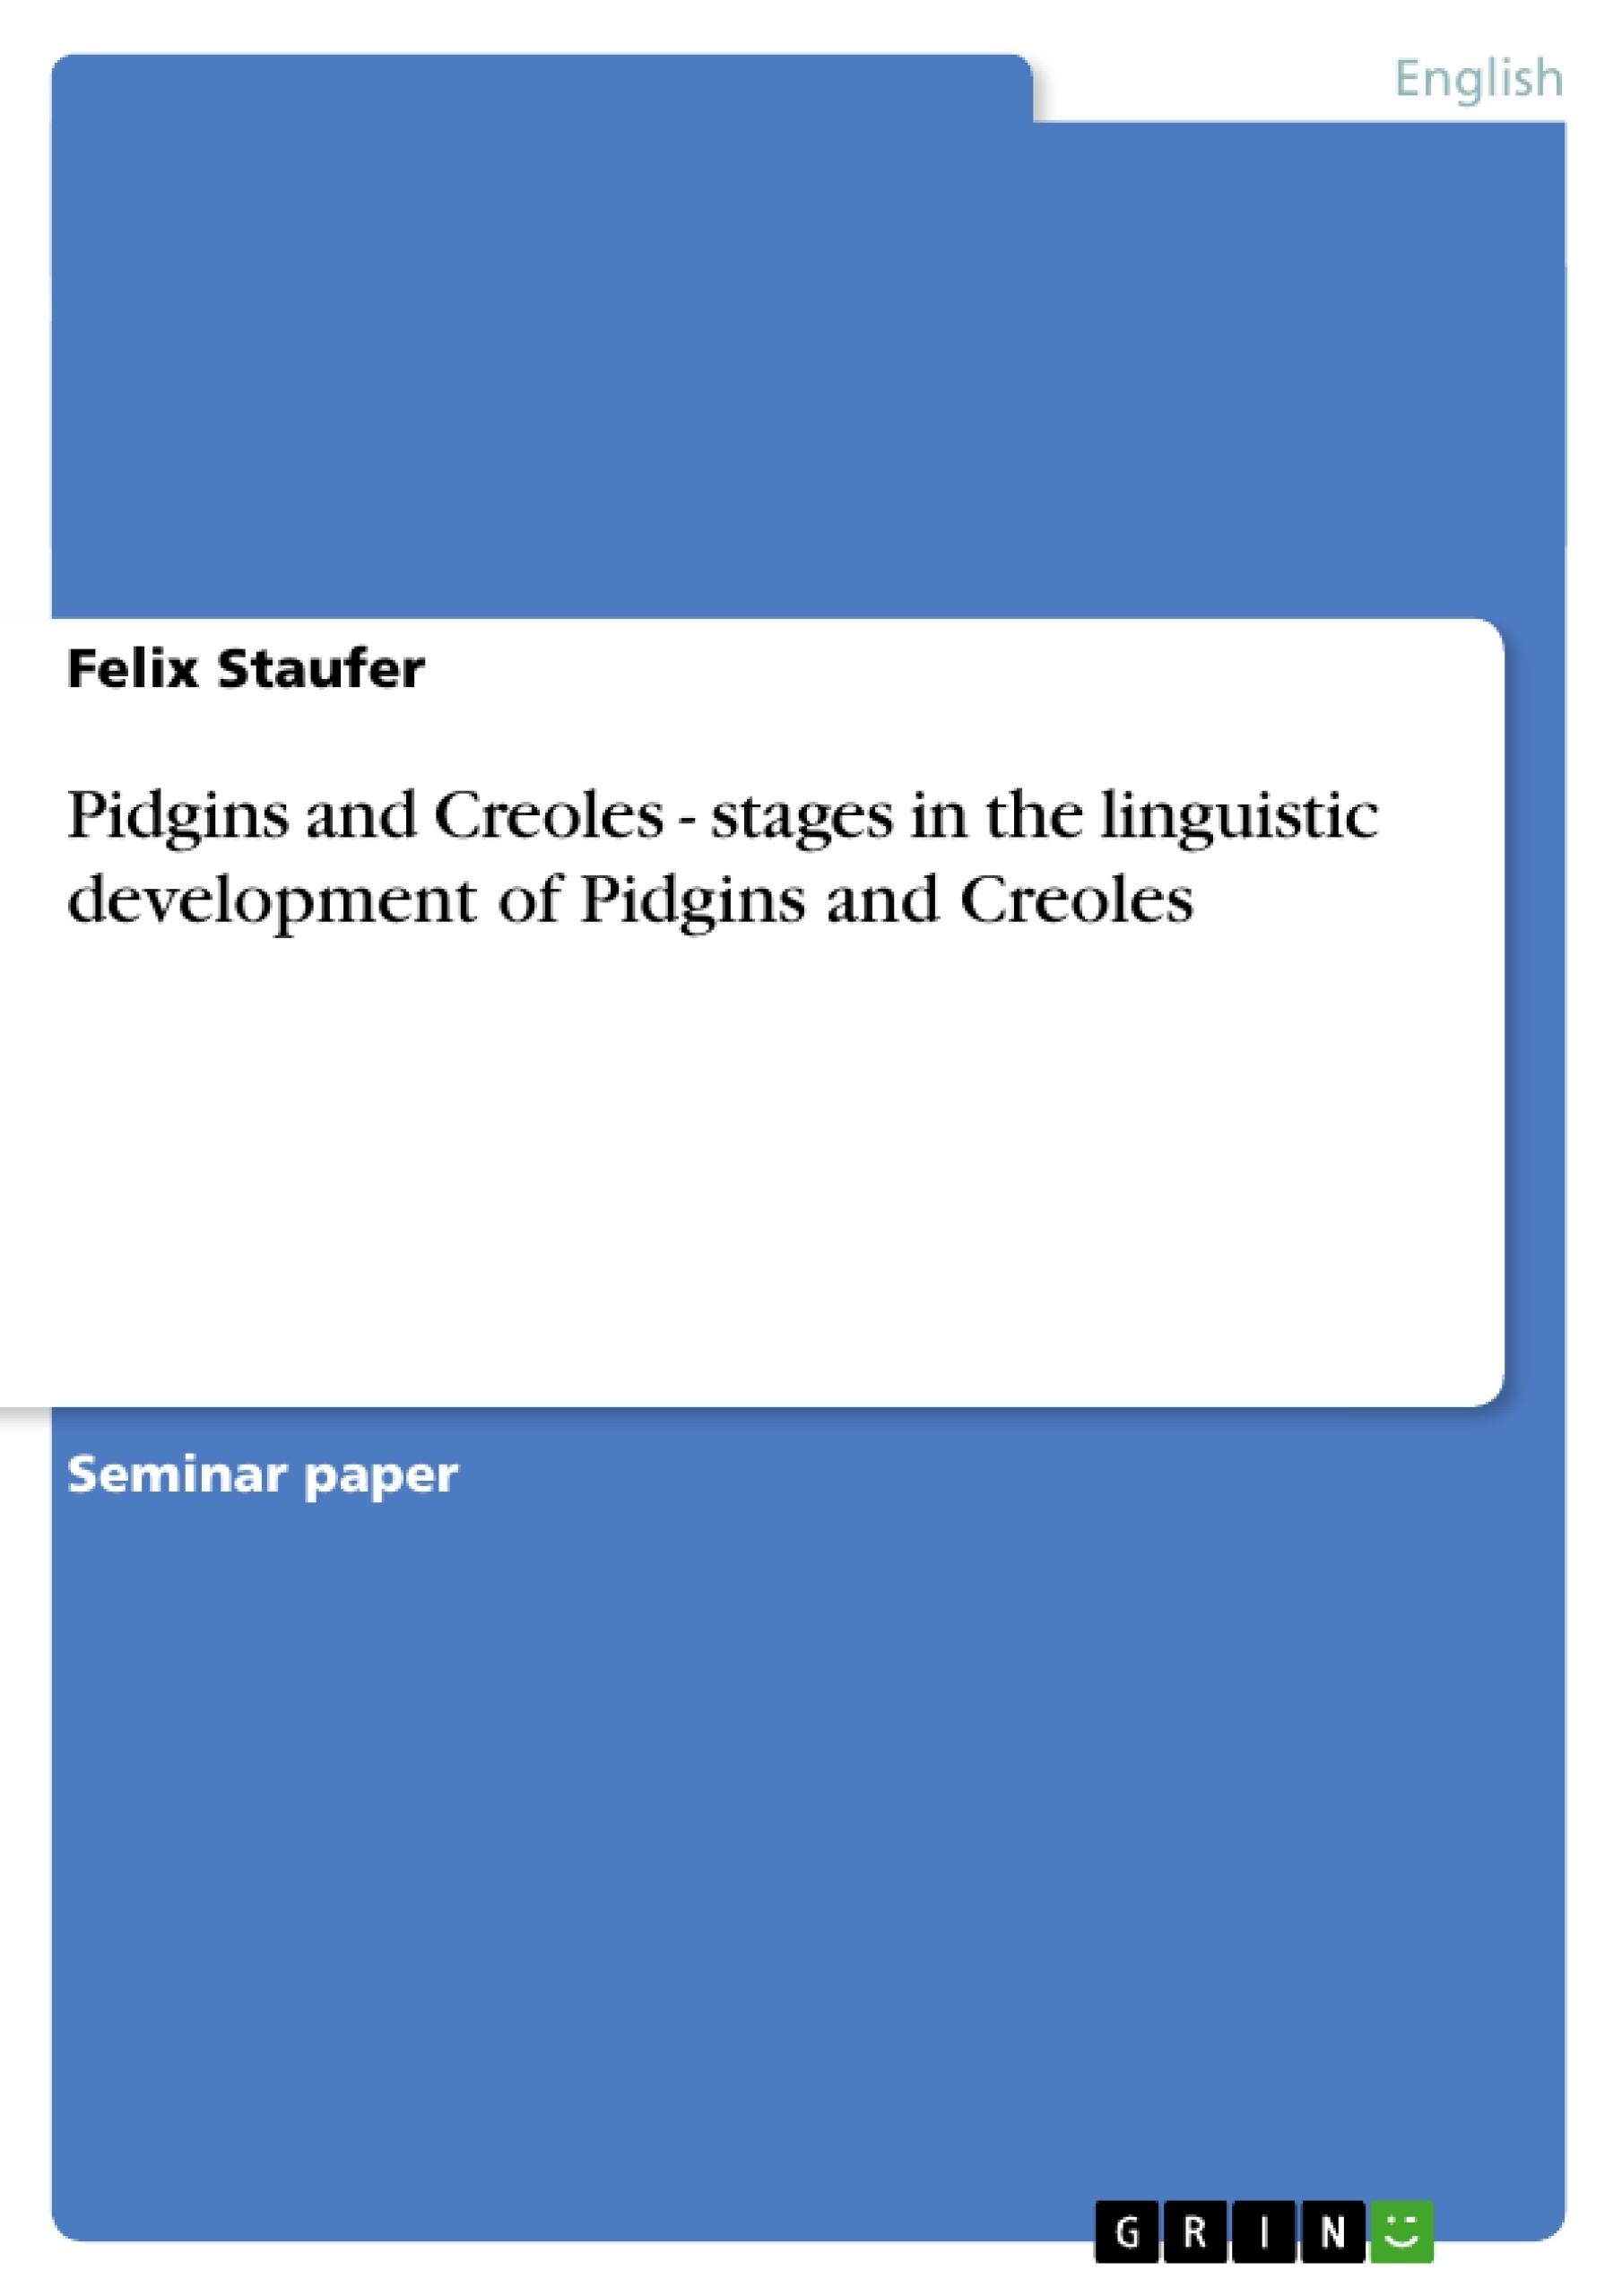 Essay on pidgins and creoles